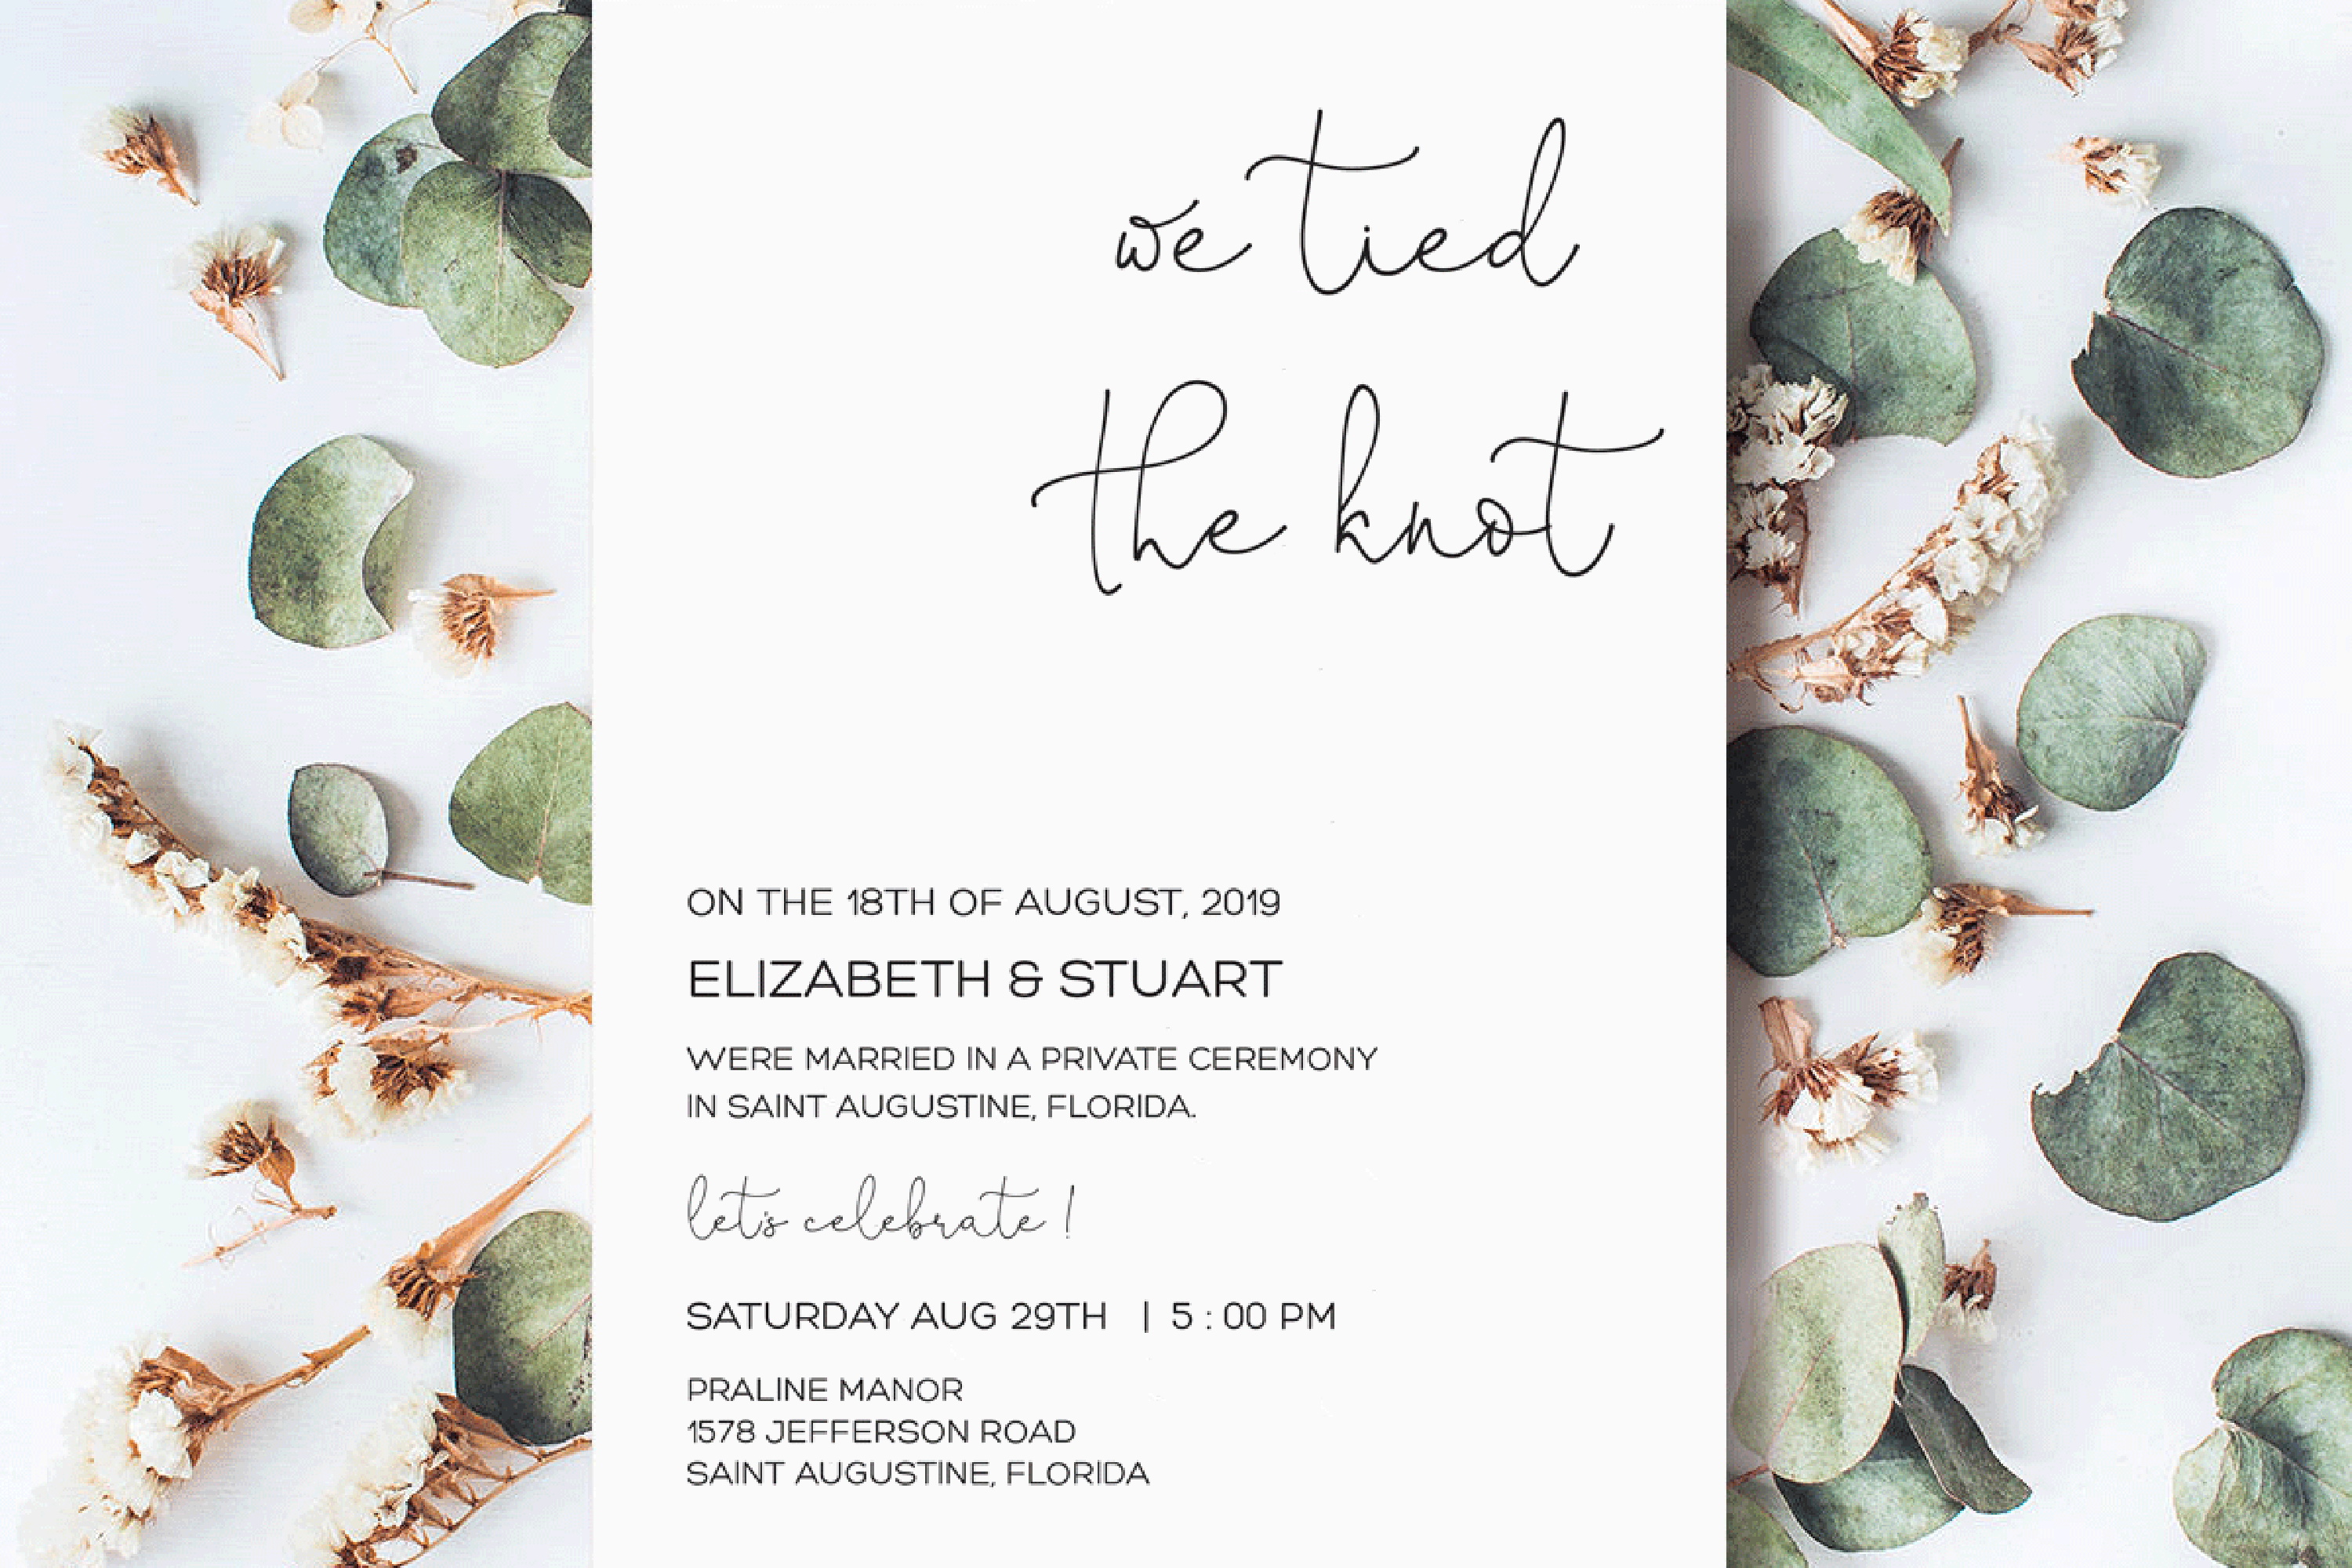 We Tied the Knot Invitation Template, Elopement Reception example image 2